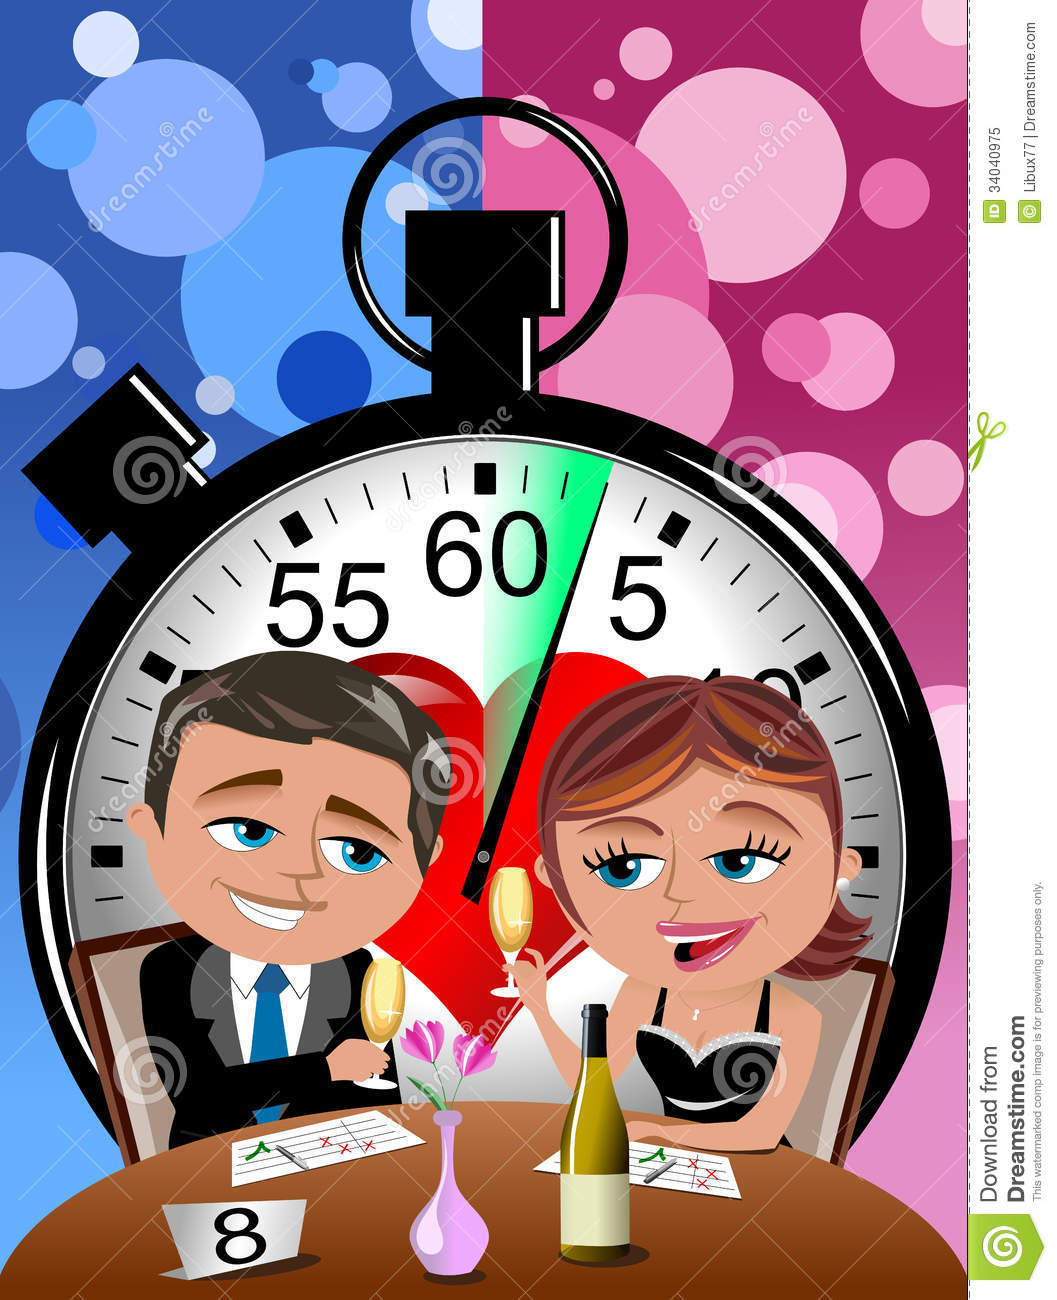 Clip speed dating